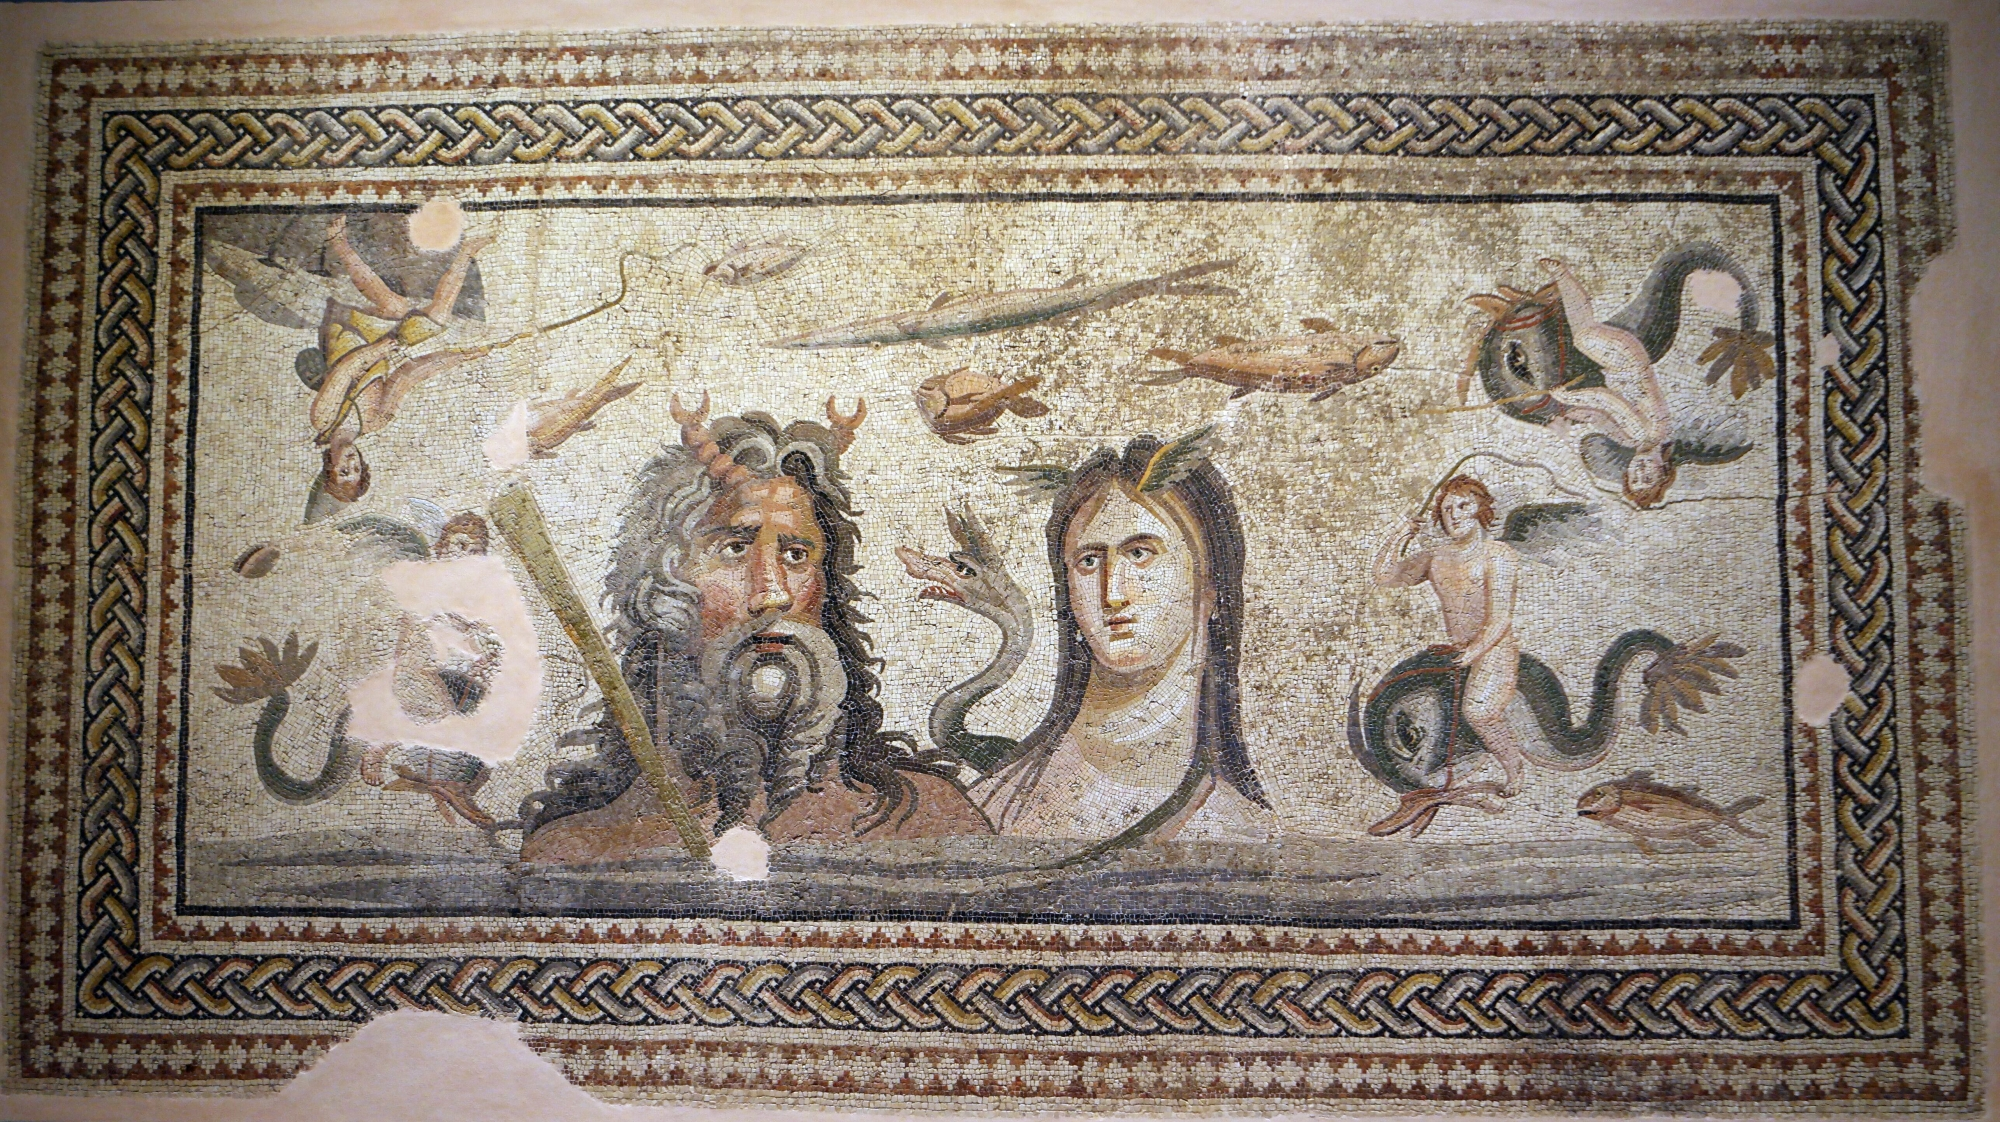 The Oceanos and Tethys Mosaic from Zeugma